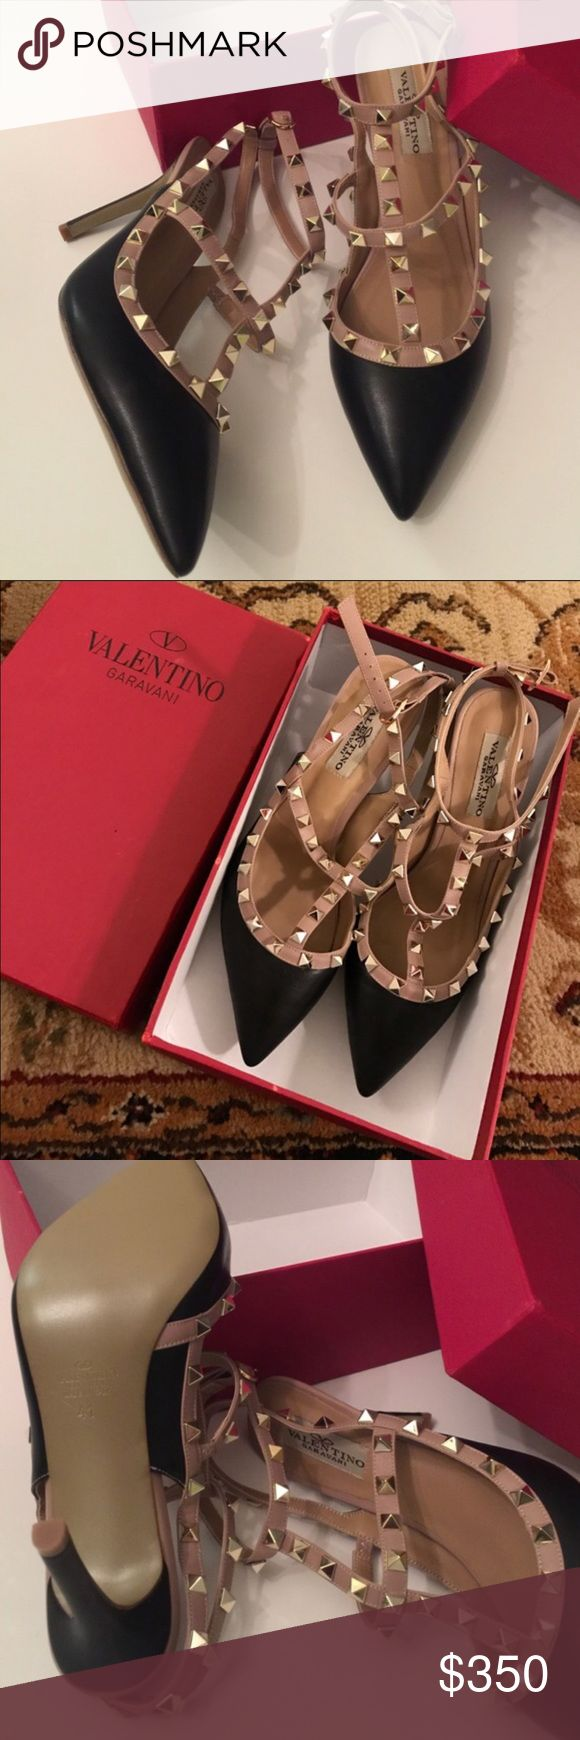 Valentino Rock stud pumps black 41/ 9 Valentino rock stud pumps black 41 / US 9 in box. These are stunning in person & excellent quality. The price is reflective of the authenticity. Valentino Shoes Heels